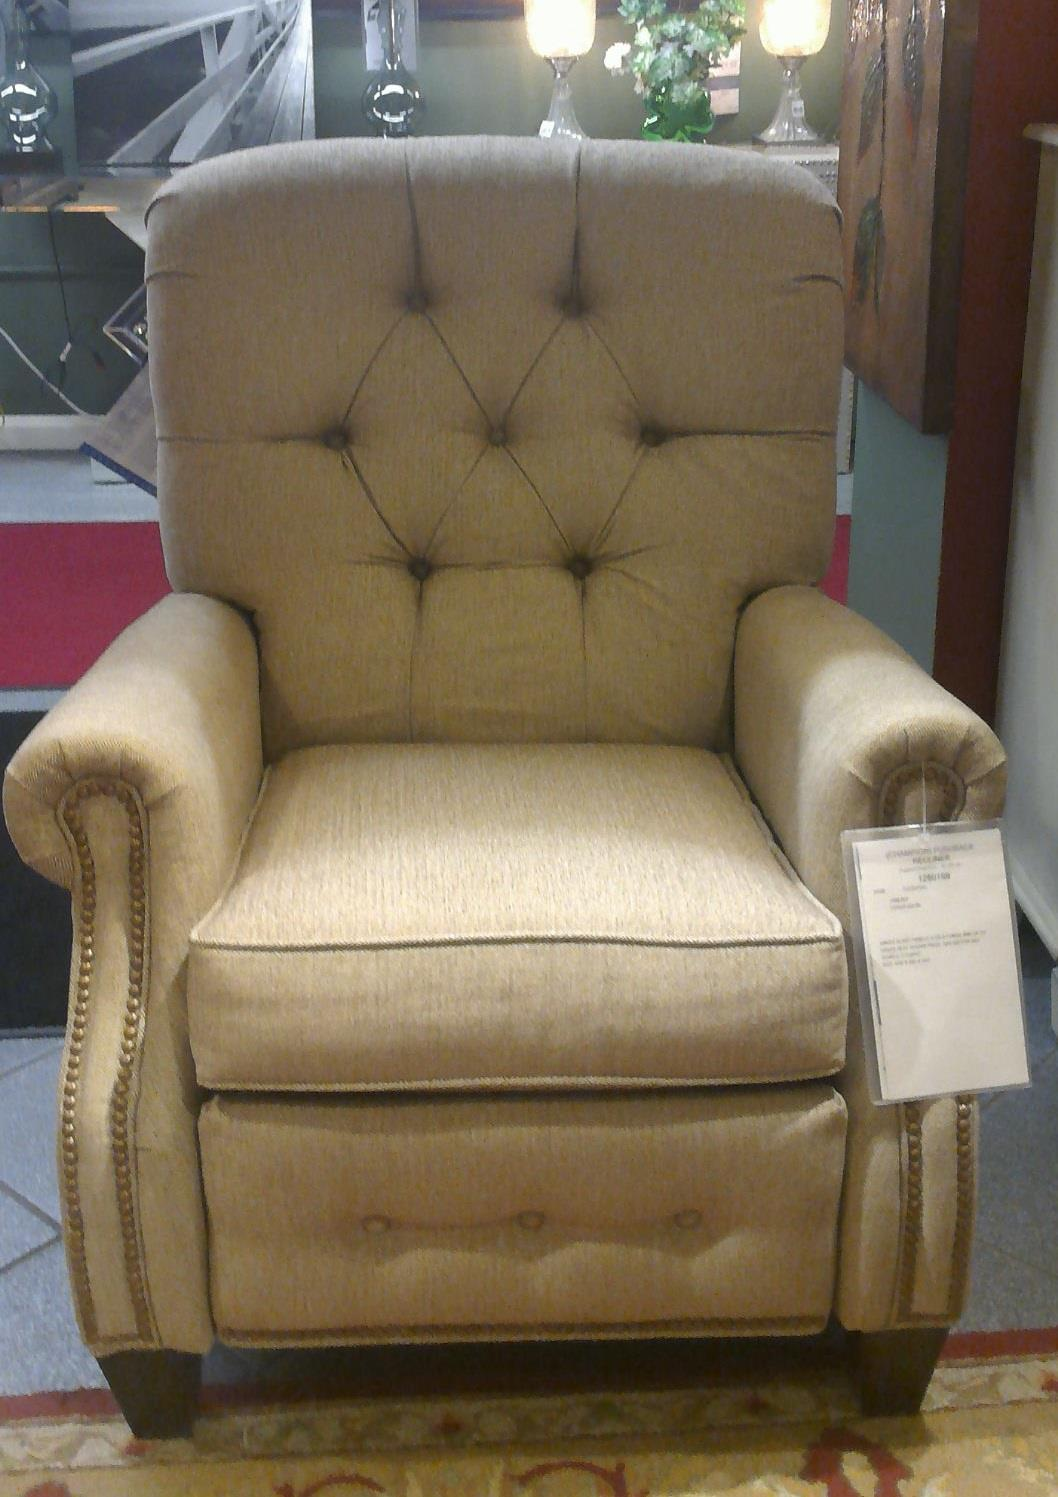 Flexsteel Champion Recliner   Item Number: 7386 503 Chair